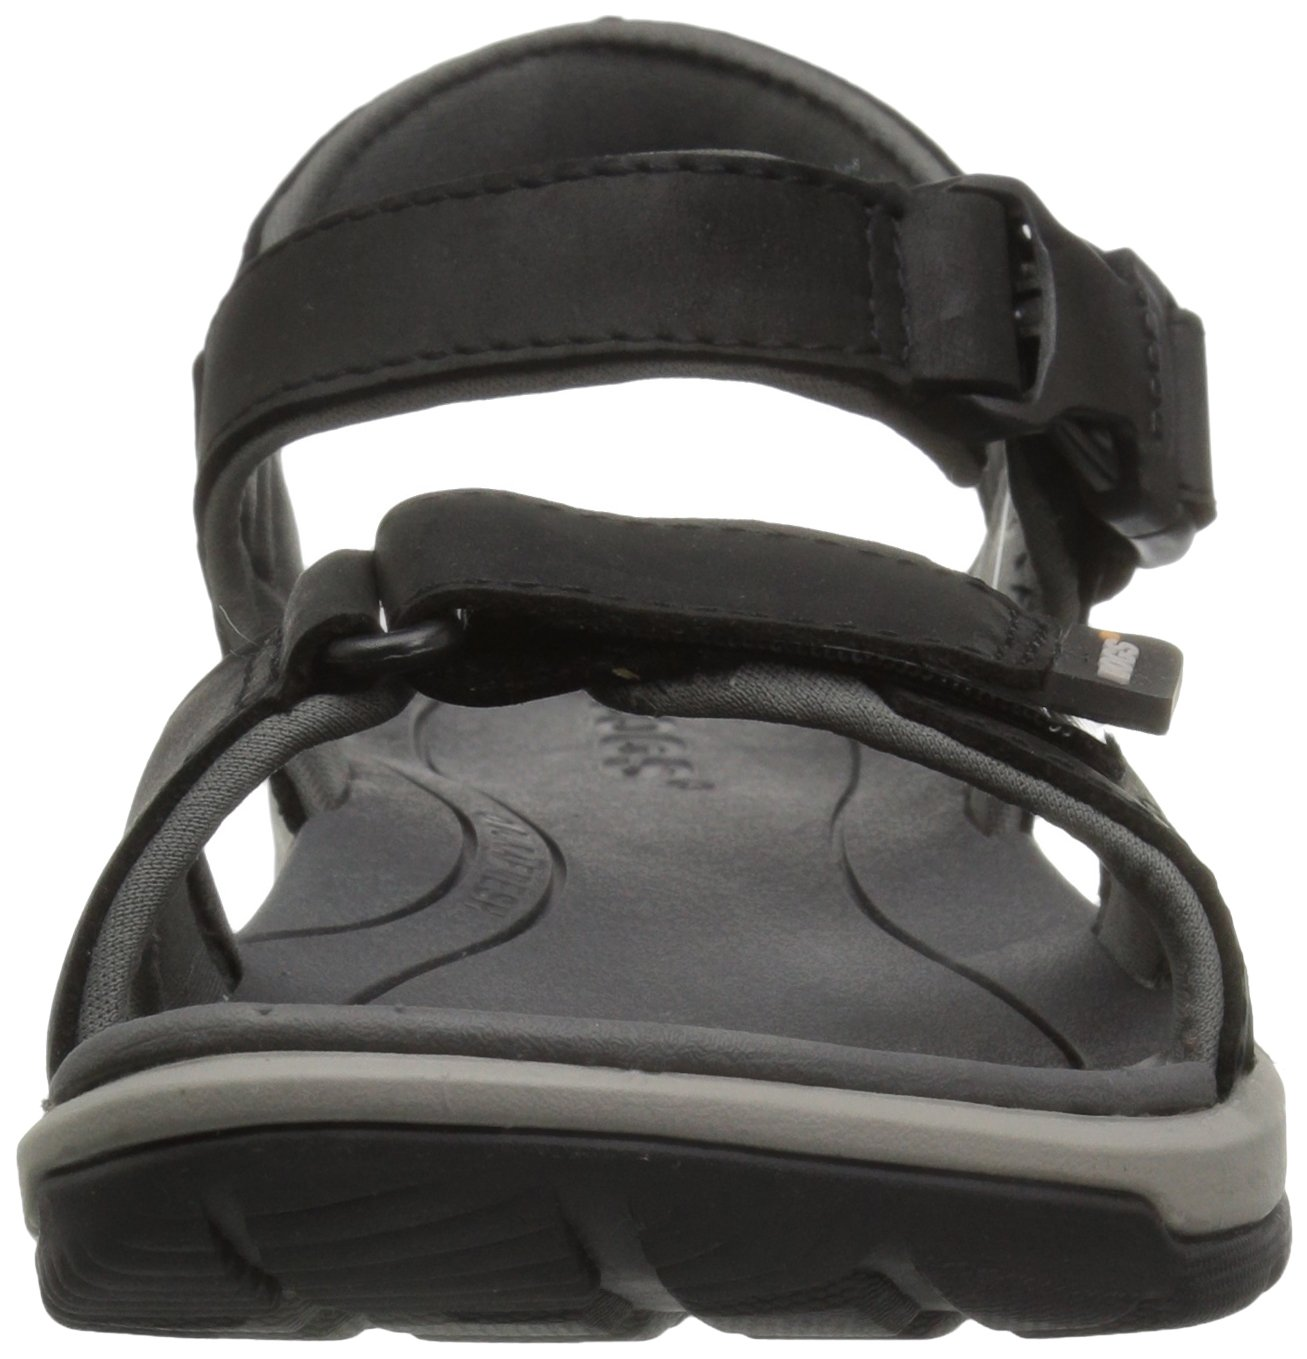 Bogs Women's Rio Leather B(M) Athletic Sandal B01KJDBOA2 7 B(M) Leather US|Black b5d313